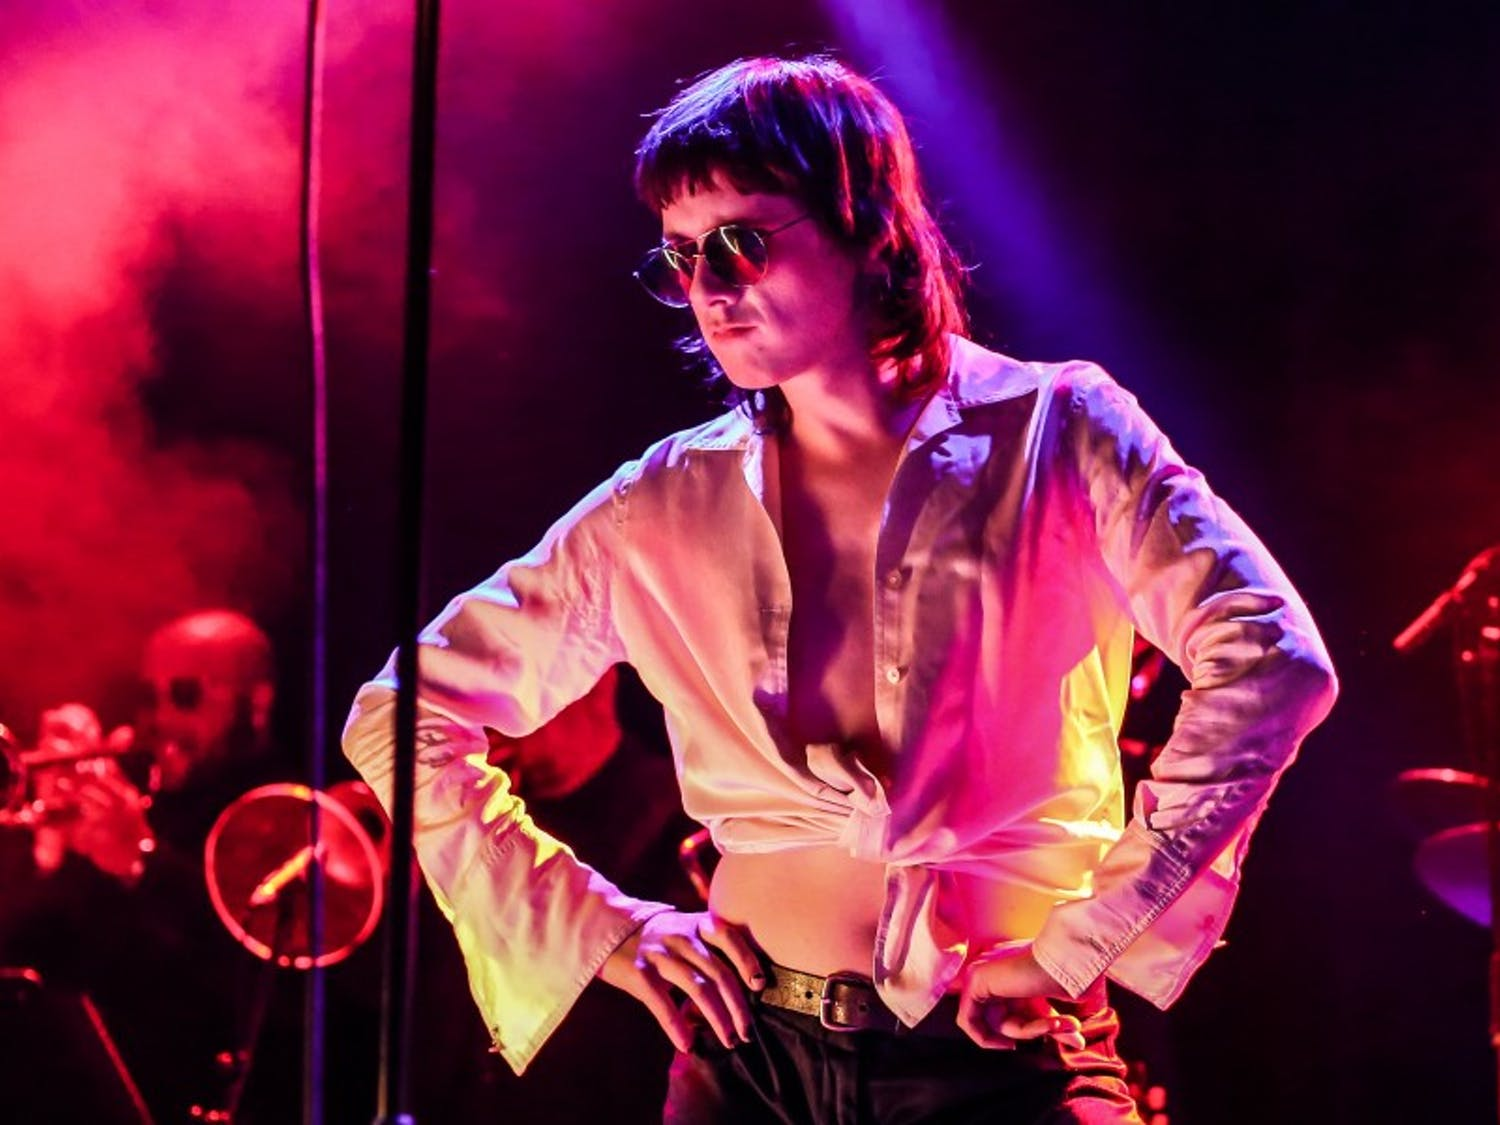 Foxygen highlighted their glam-rock sound and aesthetic during their performance Saturday.